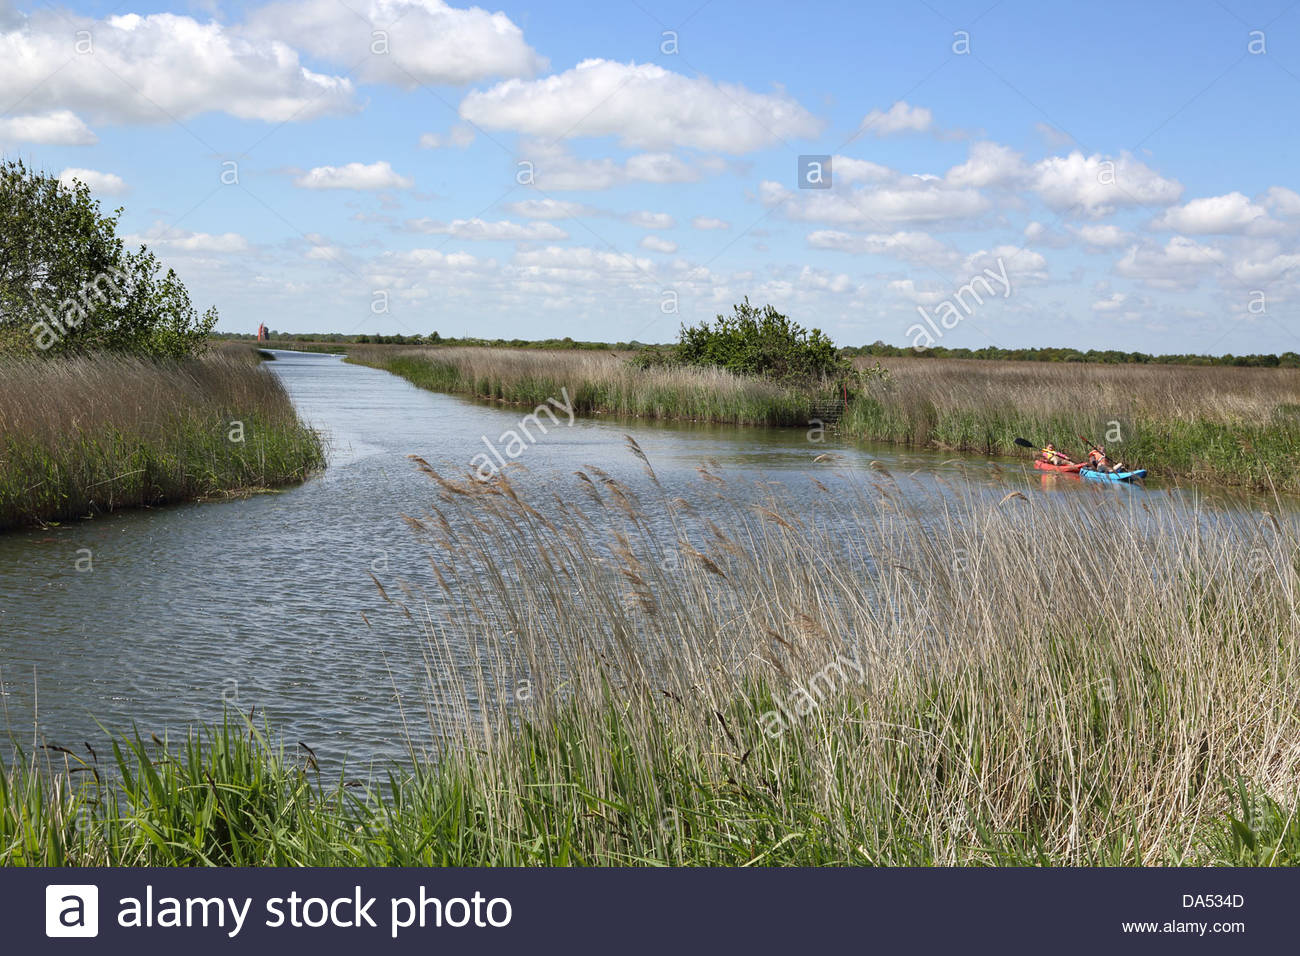 martham broad near west somerton in Norfolk - Stock Image